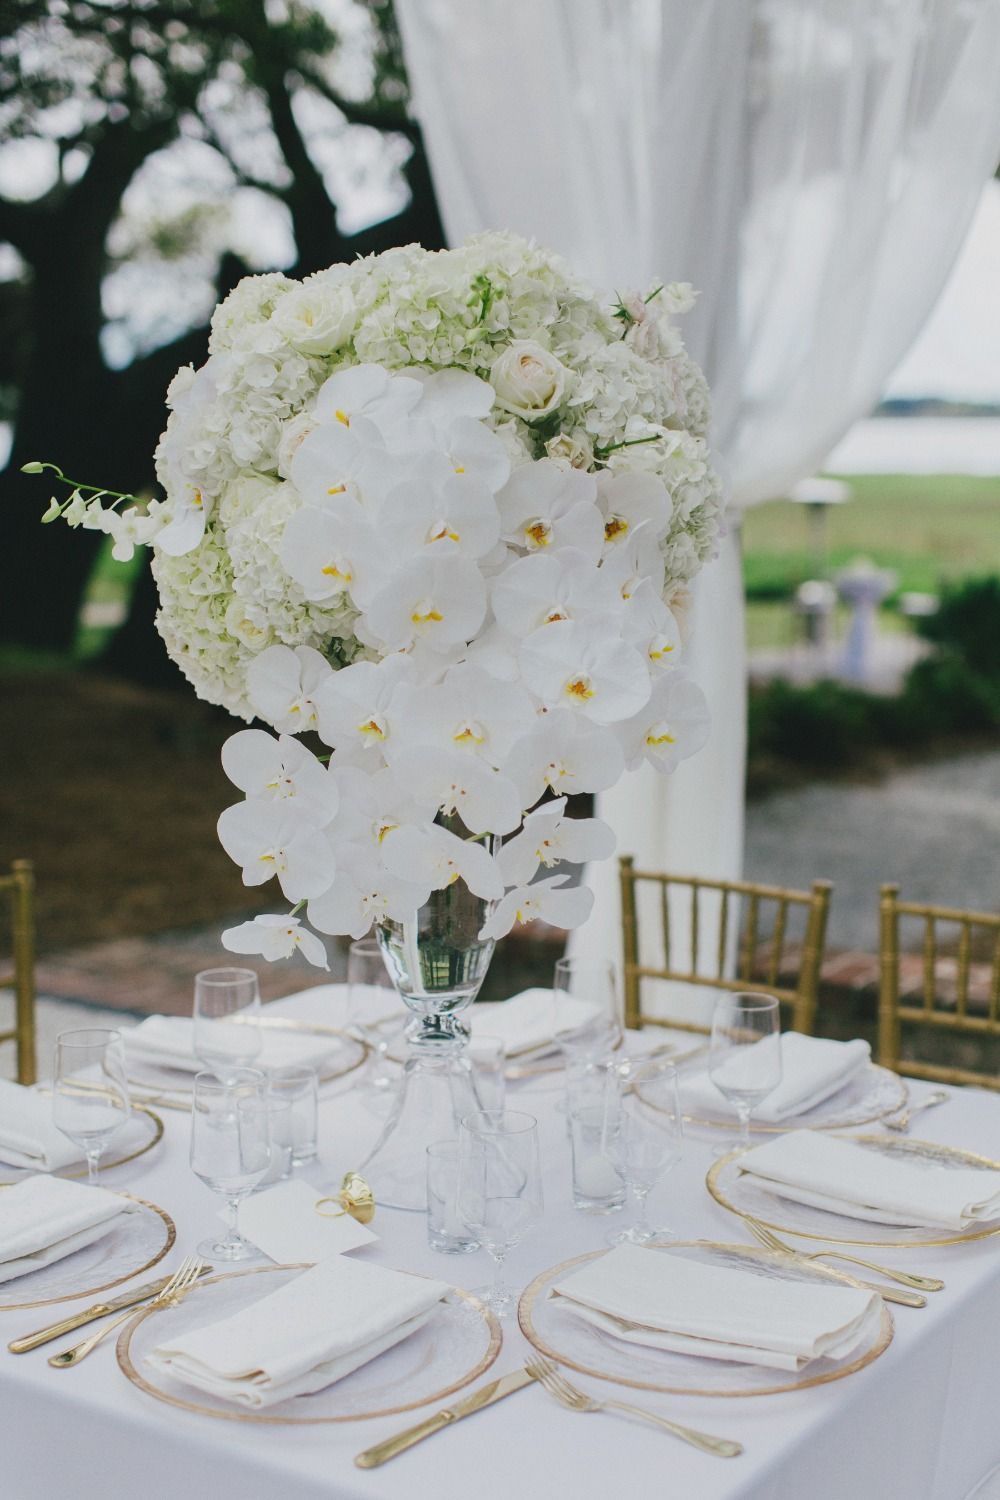 How To Have A Southern Style Dream Wedding Table Decor For